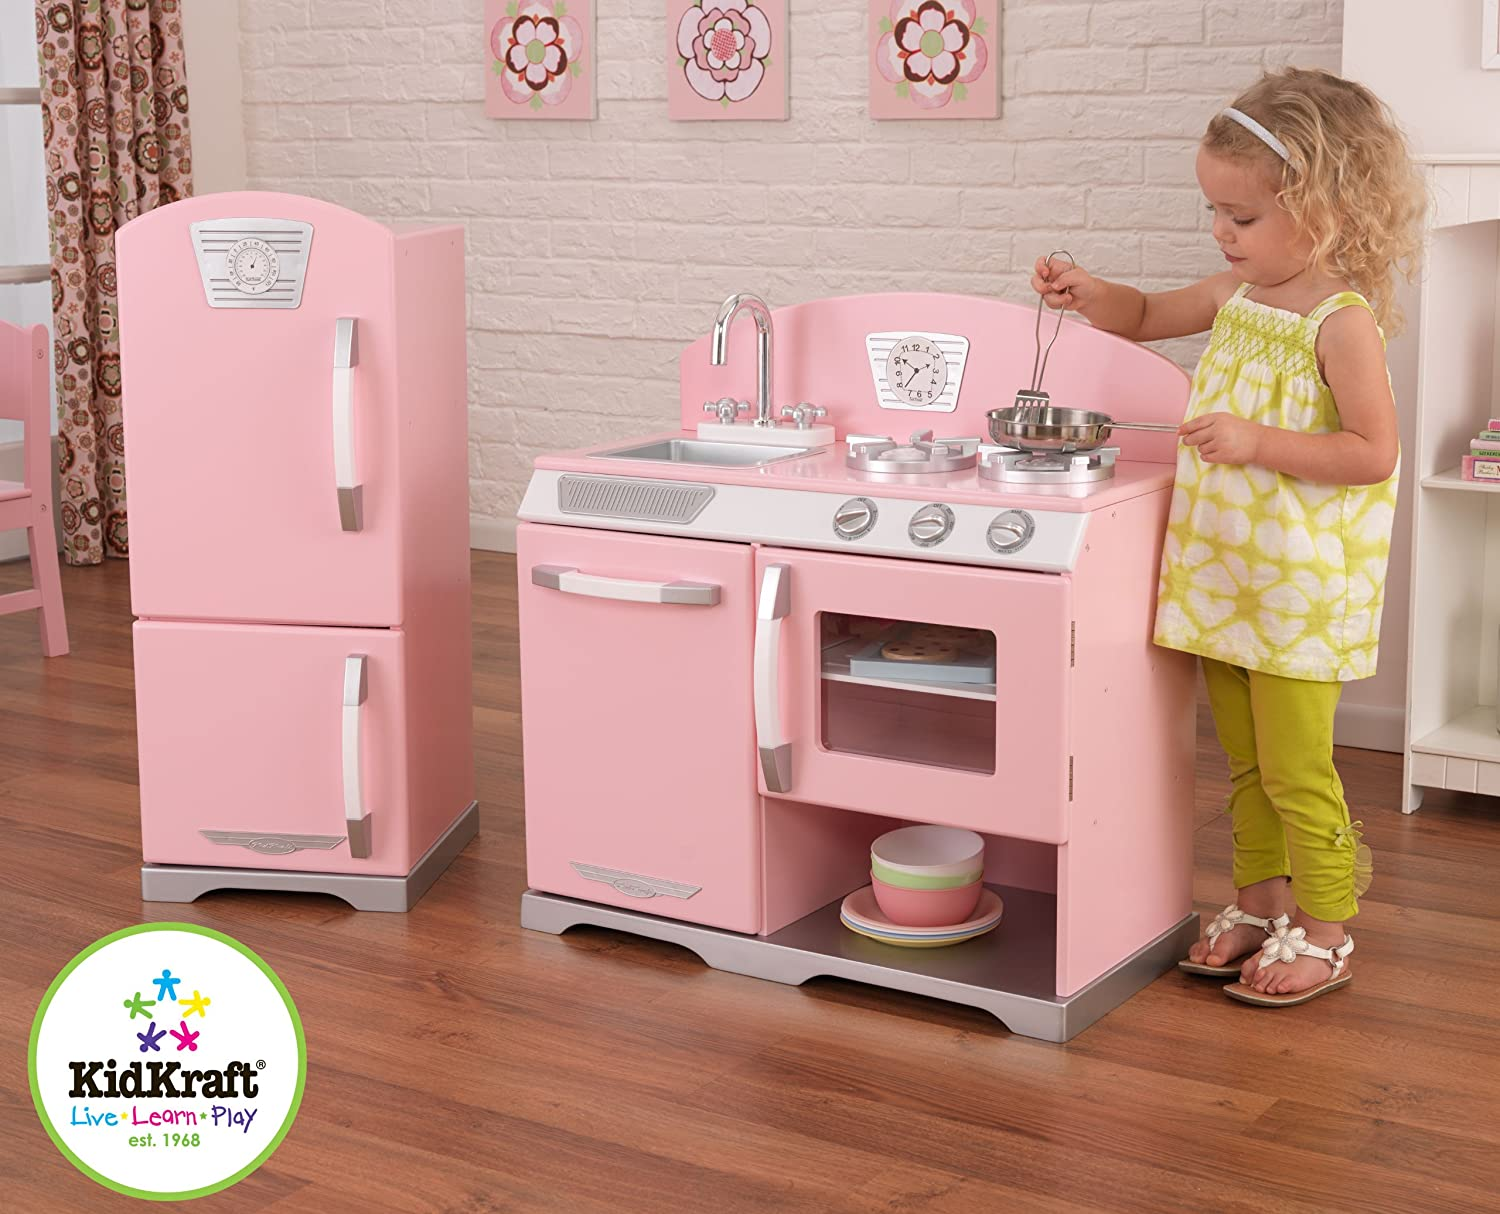 Toy Kitchen Appliance Set